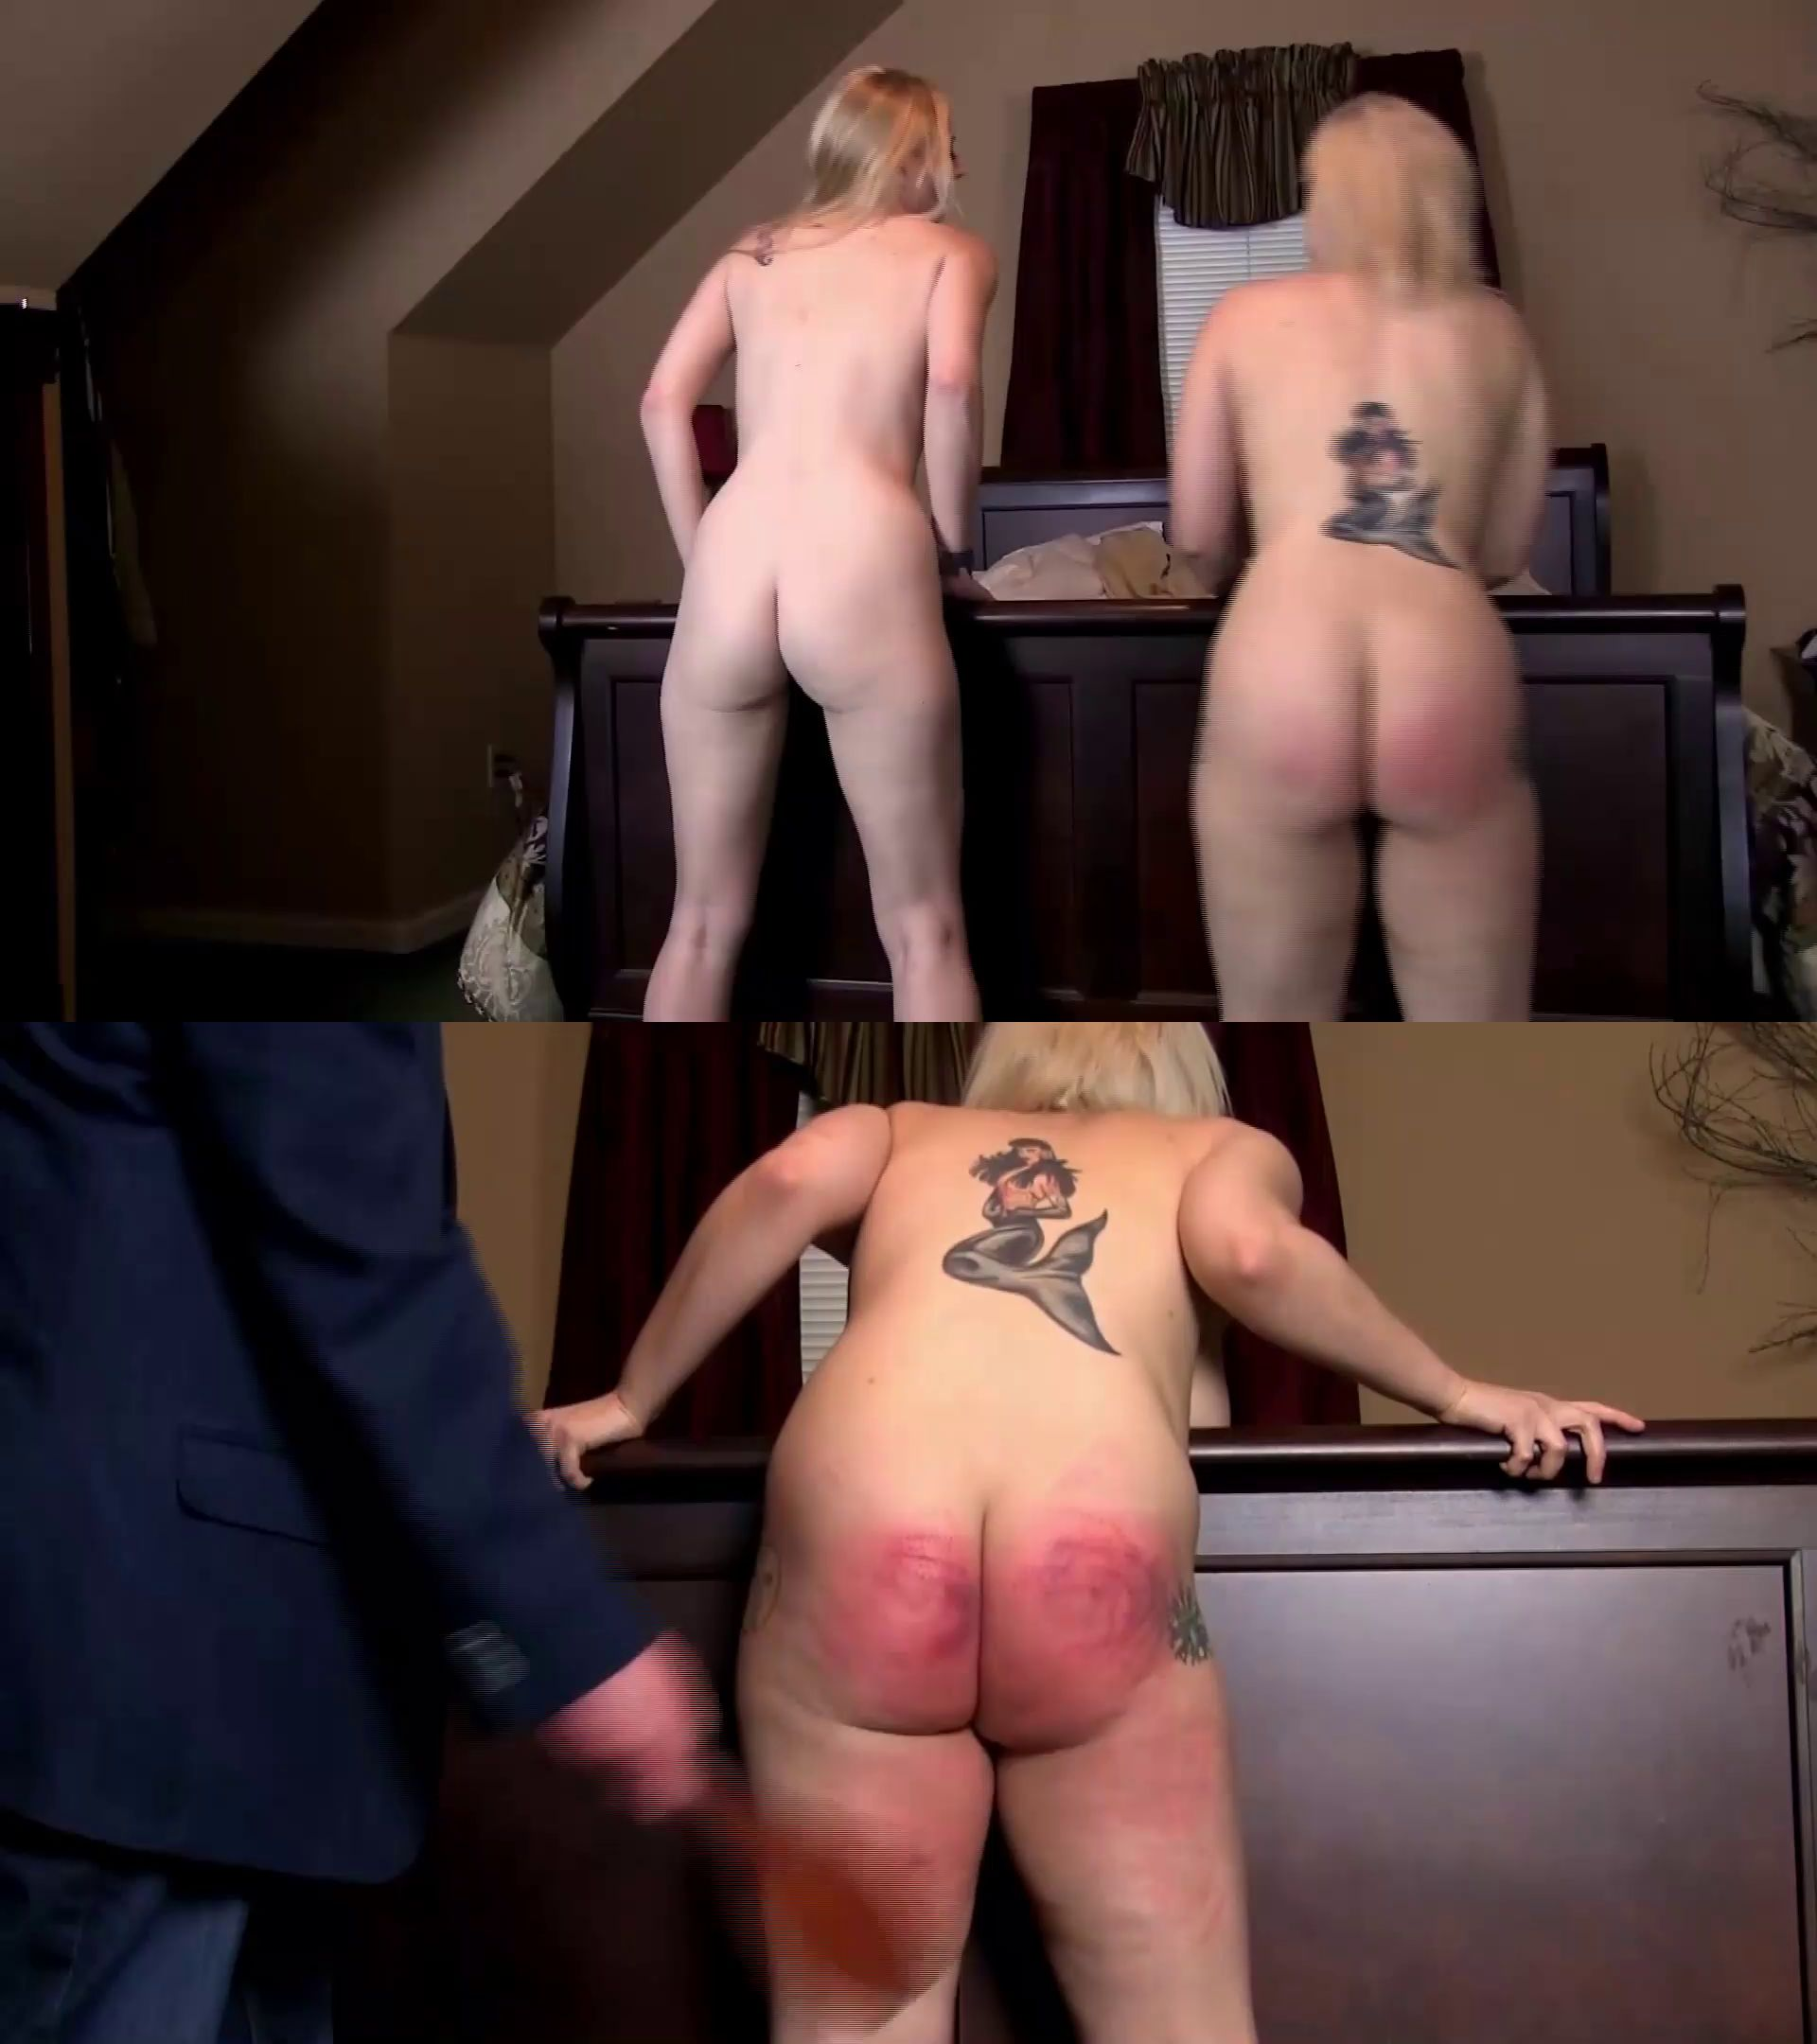 Punished Brats – MP4/Full HD – Audrey, David Pierson, Chloe Noir, Nadia White, Delirious Hunter – Company Discipline At Experienced Girlfriends